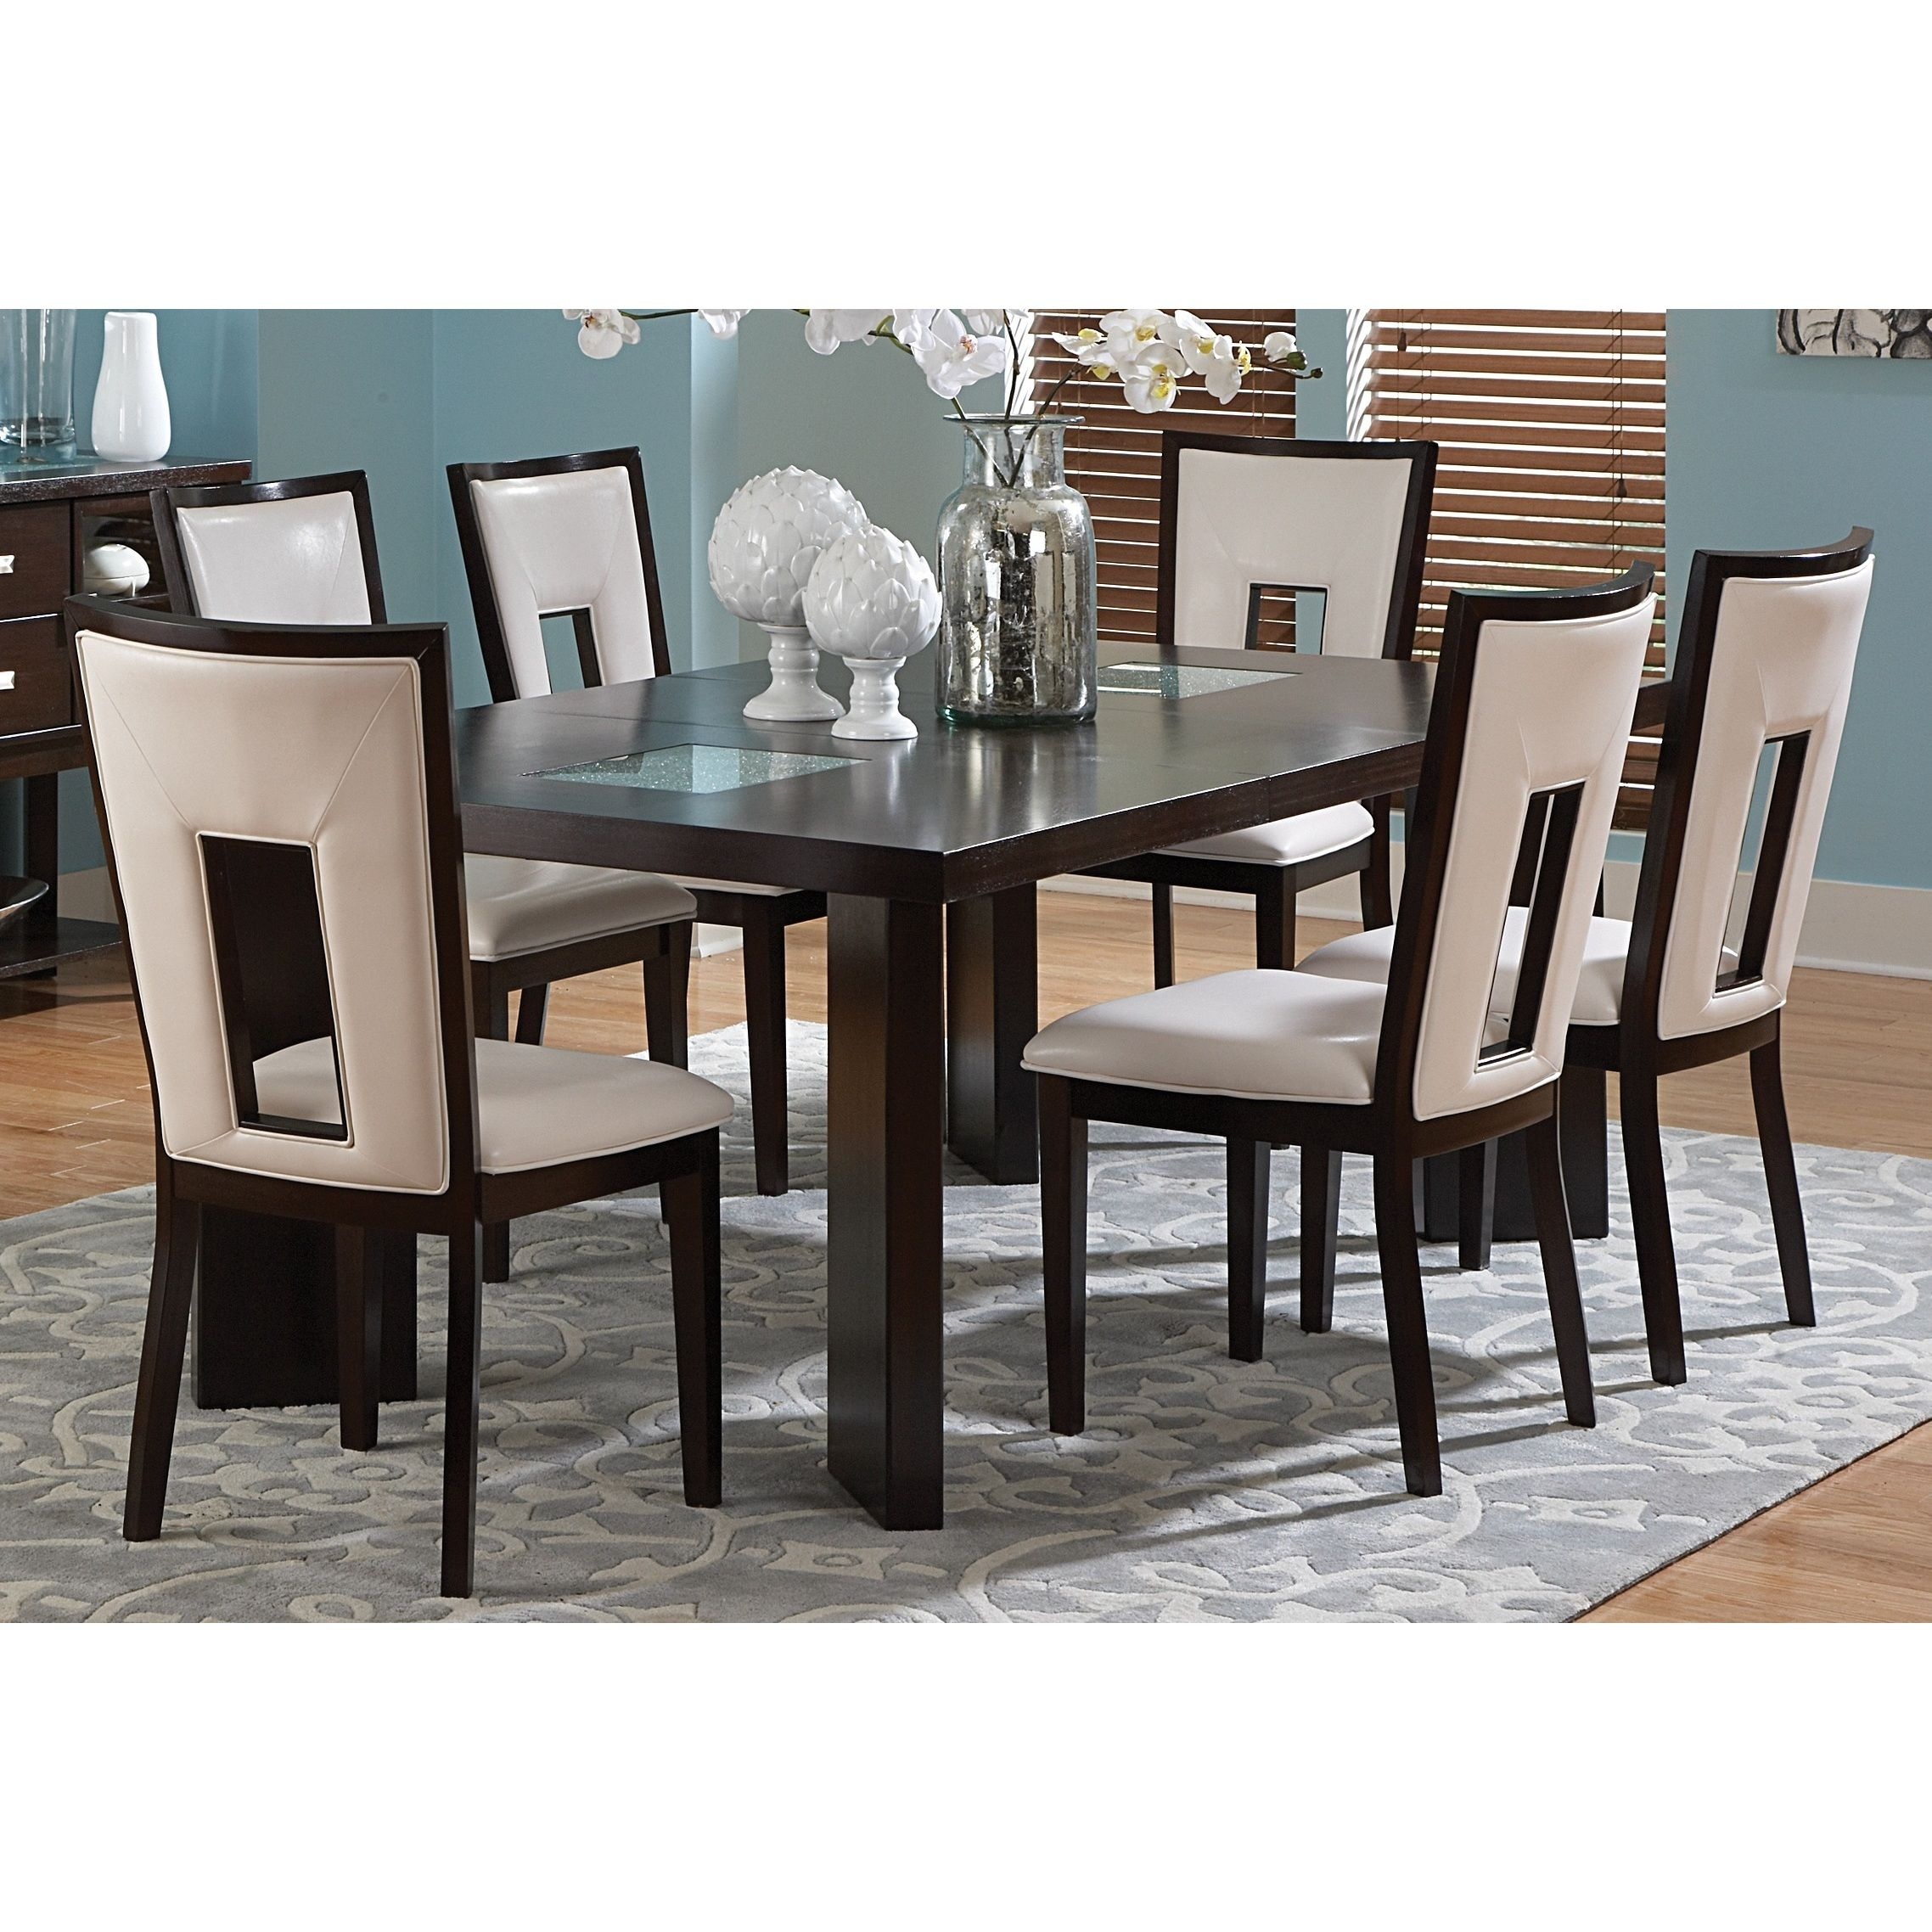 Cheap Glass Dining Room Sets: Bedding, Furniture, Electronics, Jewelry